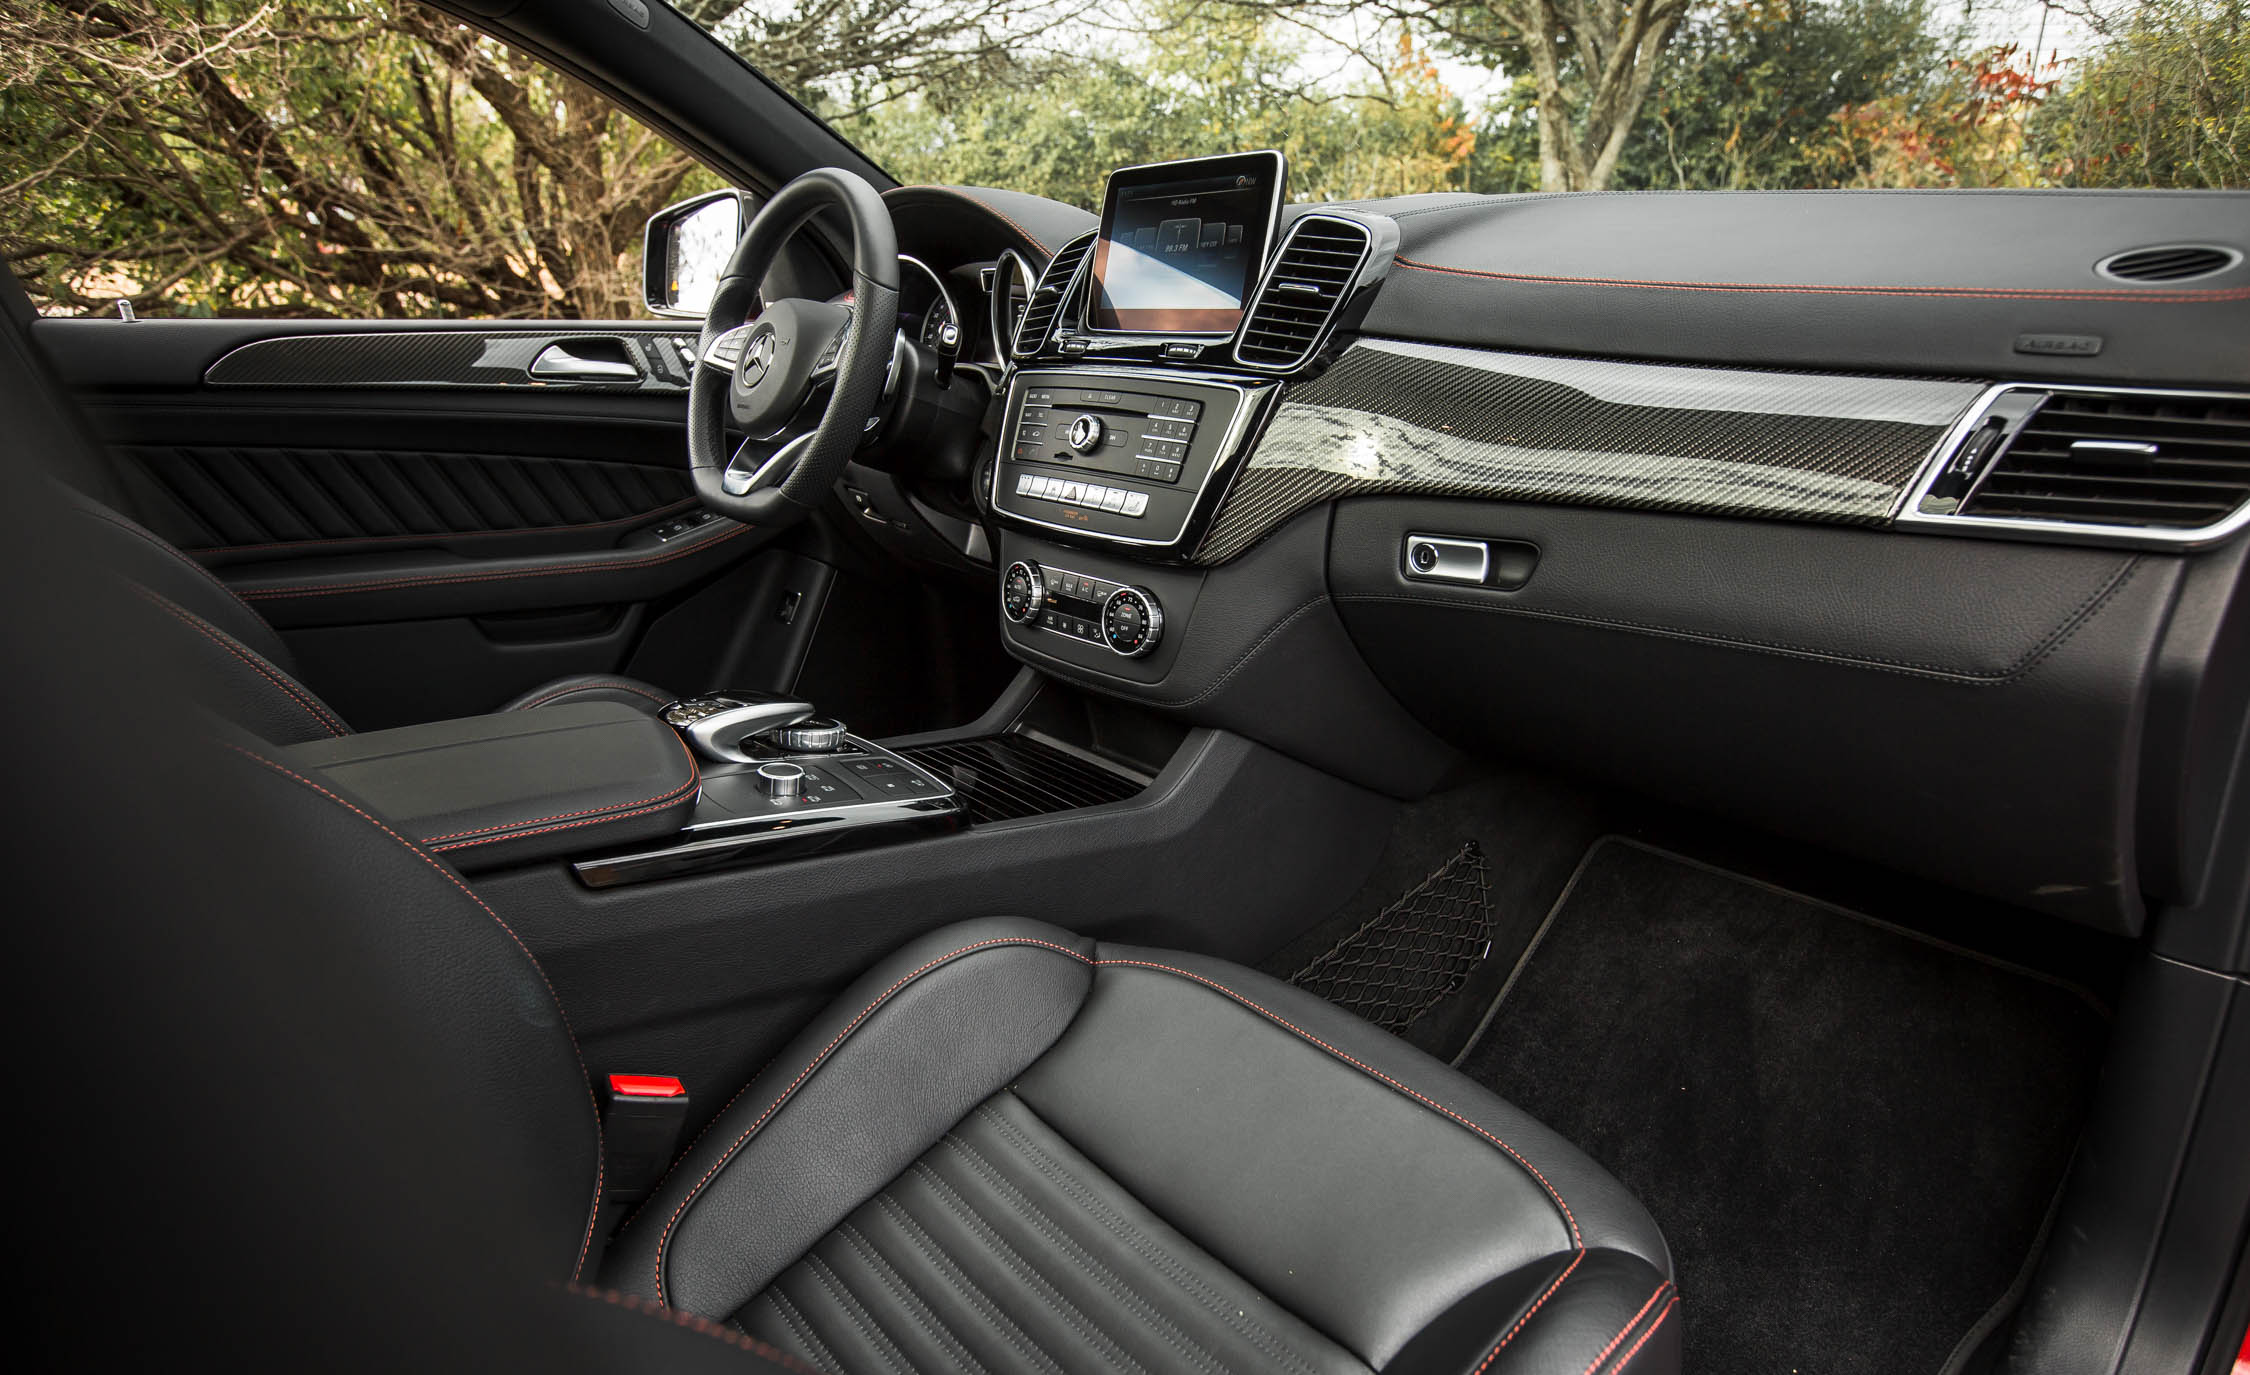 2016 Mercedes-Benz GLE450 AMG Coupe Interior Preview